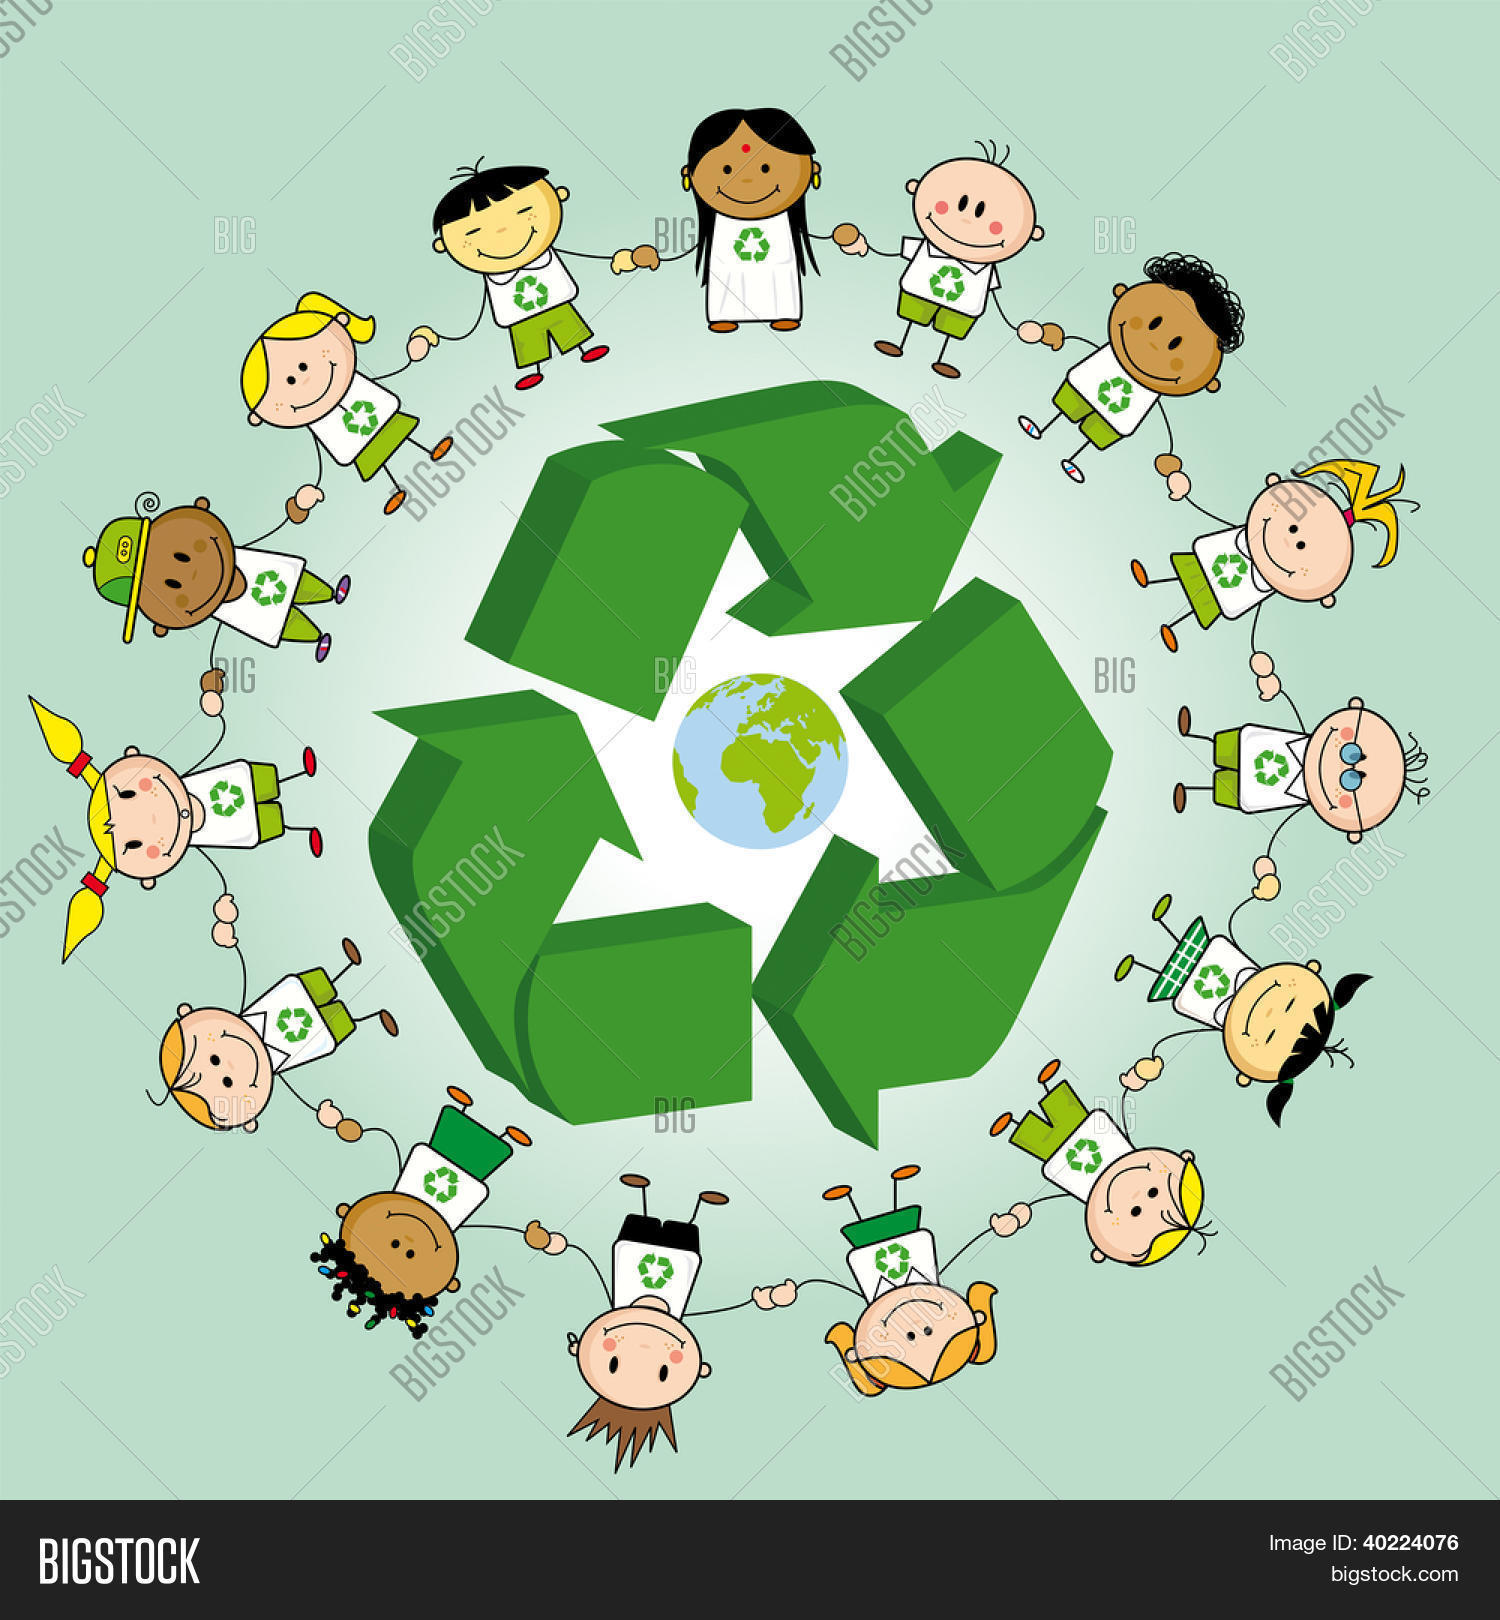 Recycling ring kids holding hands vector photo bigstock recycling ring kids holding hands around a recycle symbol and the earth biocorpaavc Choice Image